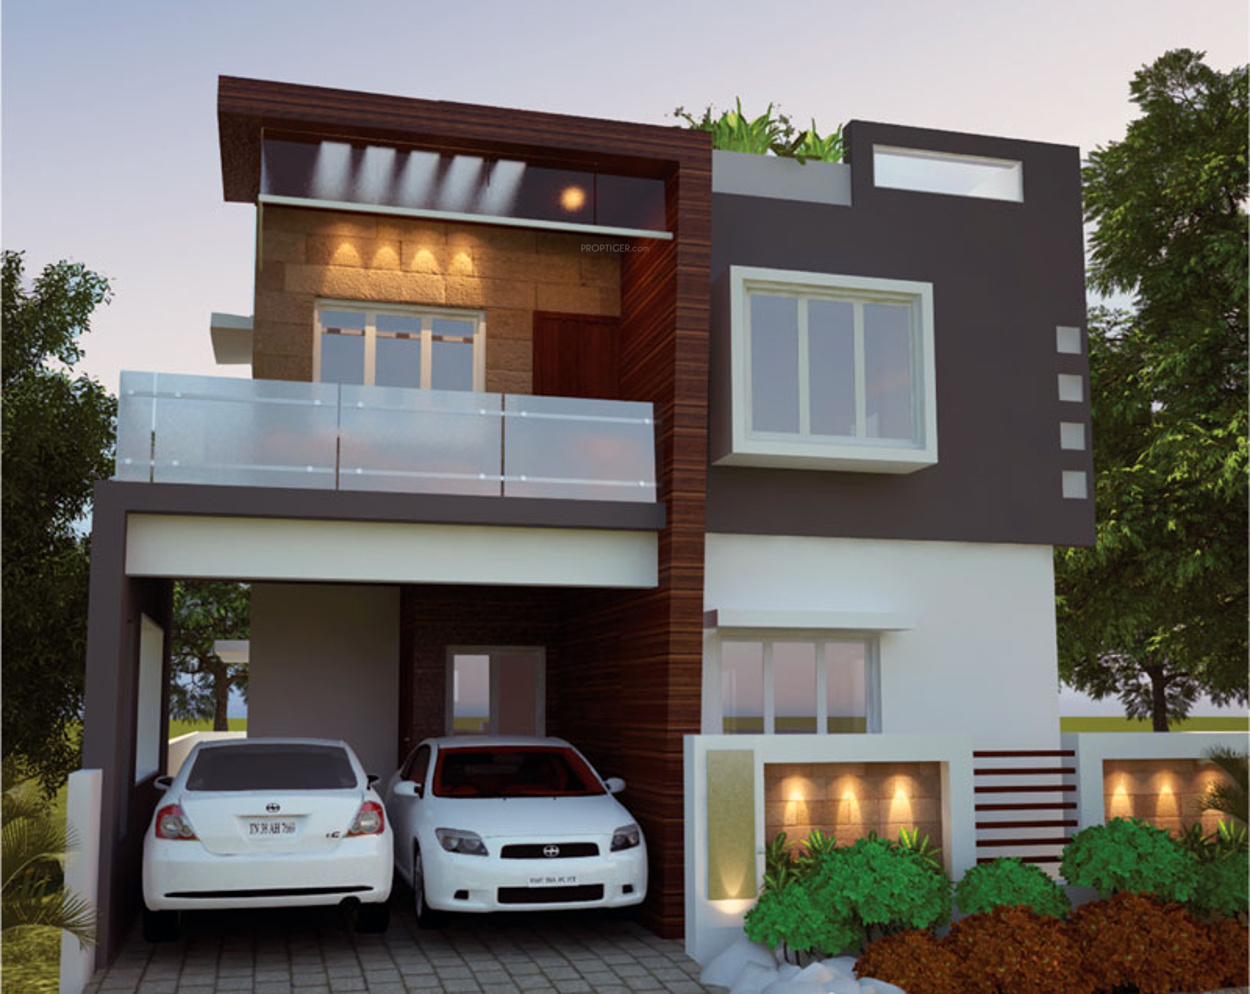 Images For Elevation Of M R Adithya Developers Windsor Park